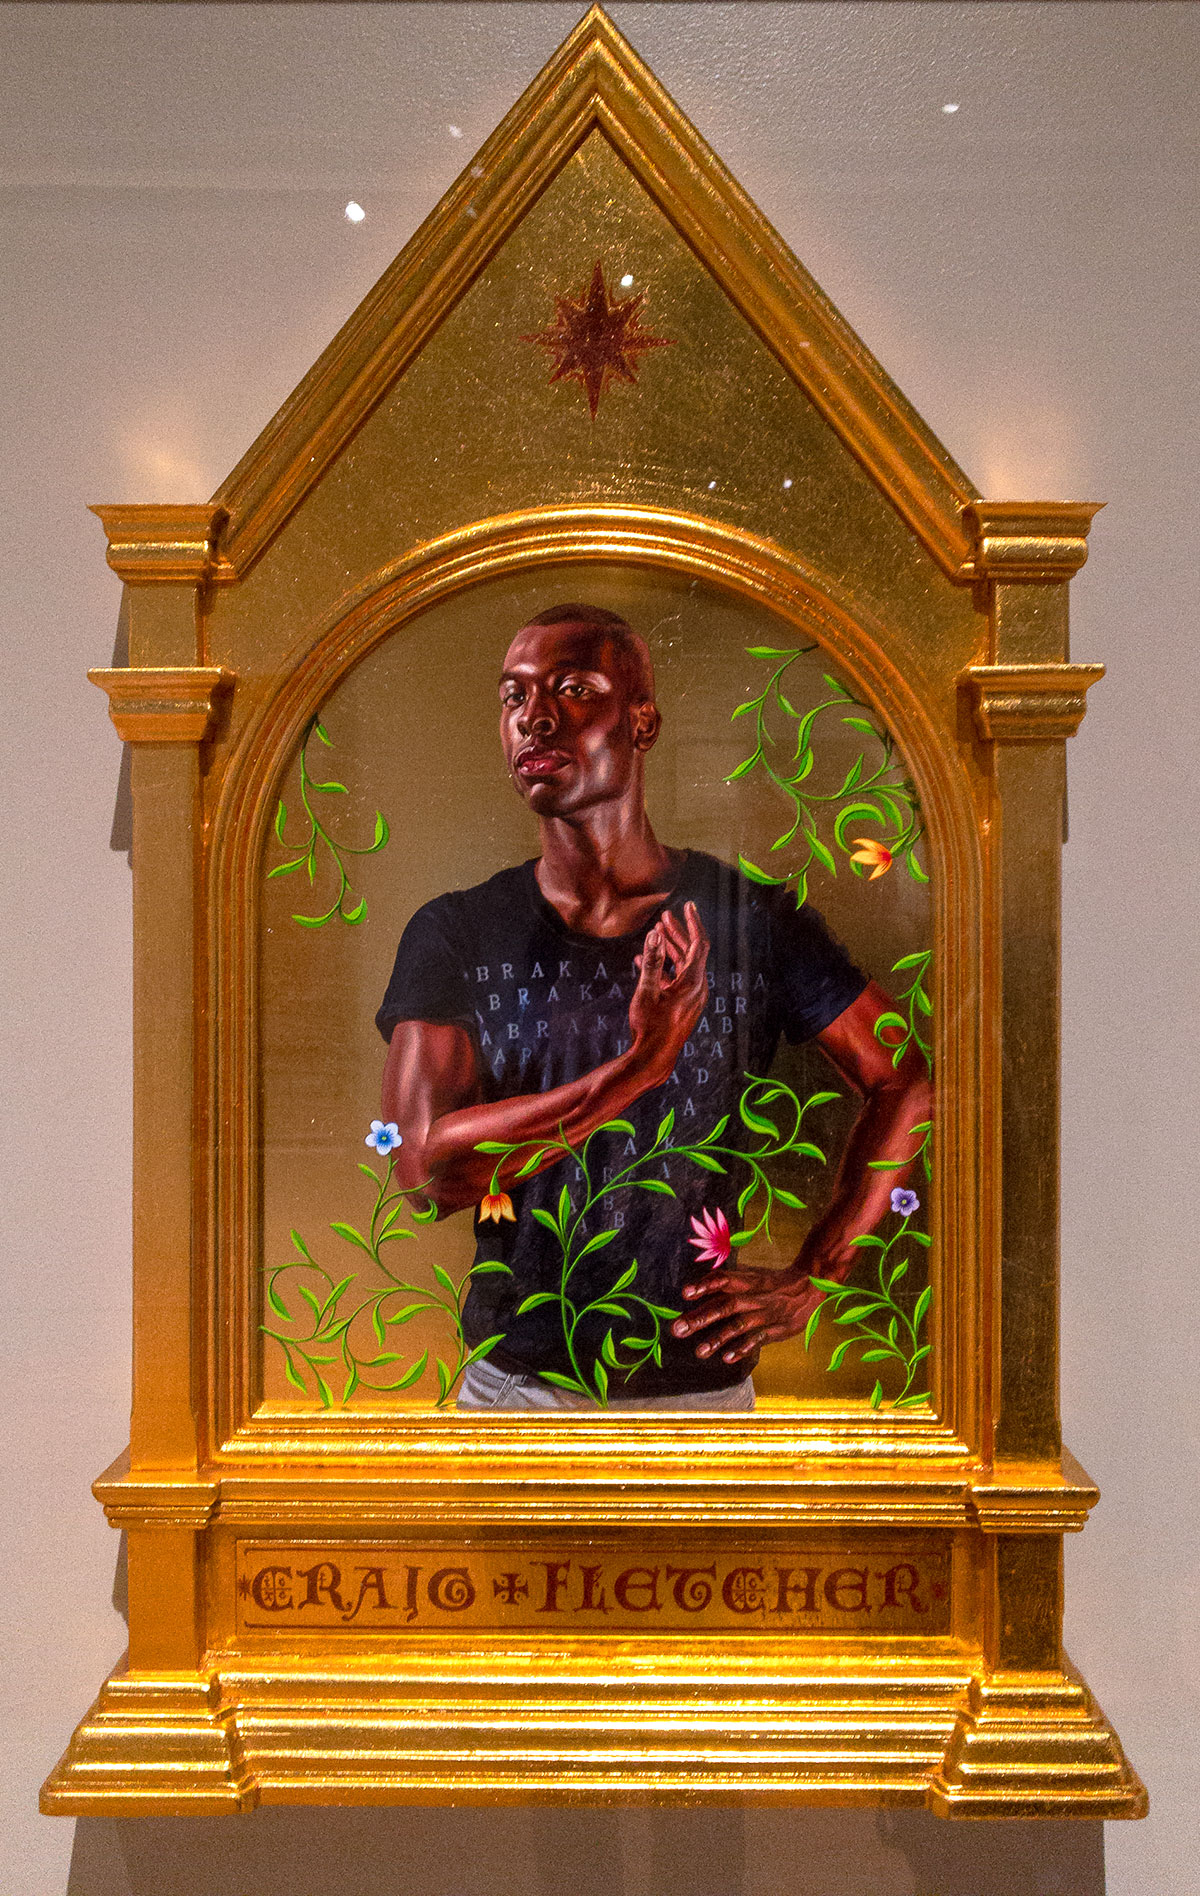 St. John the Baptist  by Kehinde Wiley, Gold Leaf and Oil Paint on Wood Panel, Metal.